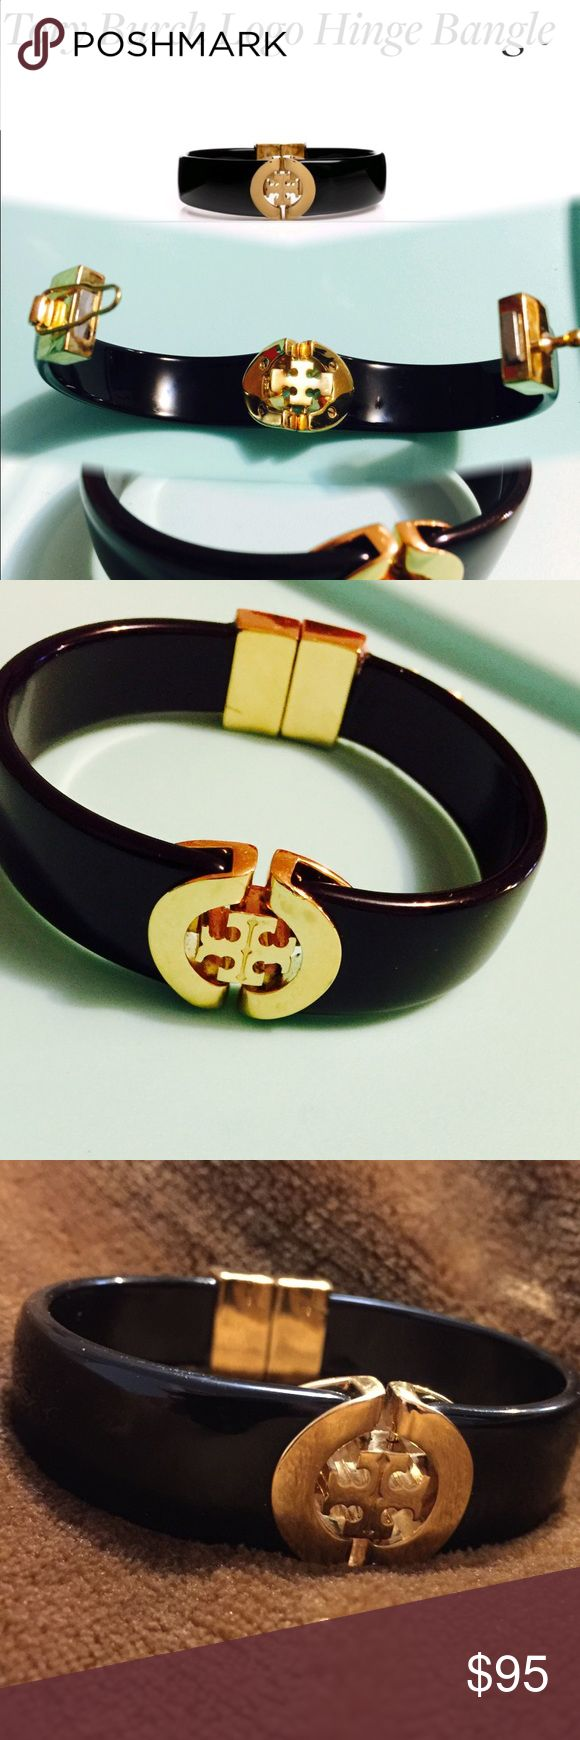 Tory Burch Tory Burch hinged Logo Bangle in black and logo in gold. Excellent used condition has lil scratch inside of the clasp but thats all. Authentic Tory Burch # jewelry # bracelet # black and Gold Bangle 💜 (Shop and feel good about it 😁. Part of the money u spend goes to Purple Heart Foundation 💜) Tory Burch Jewelry Bracelets